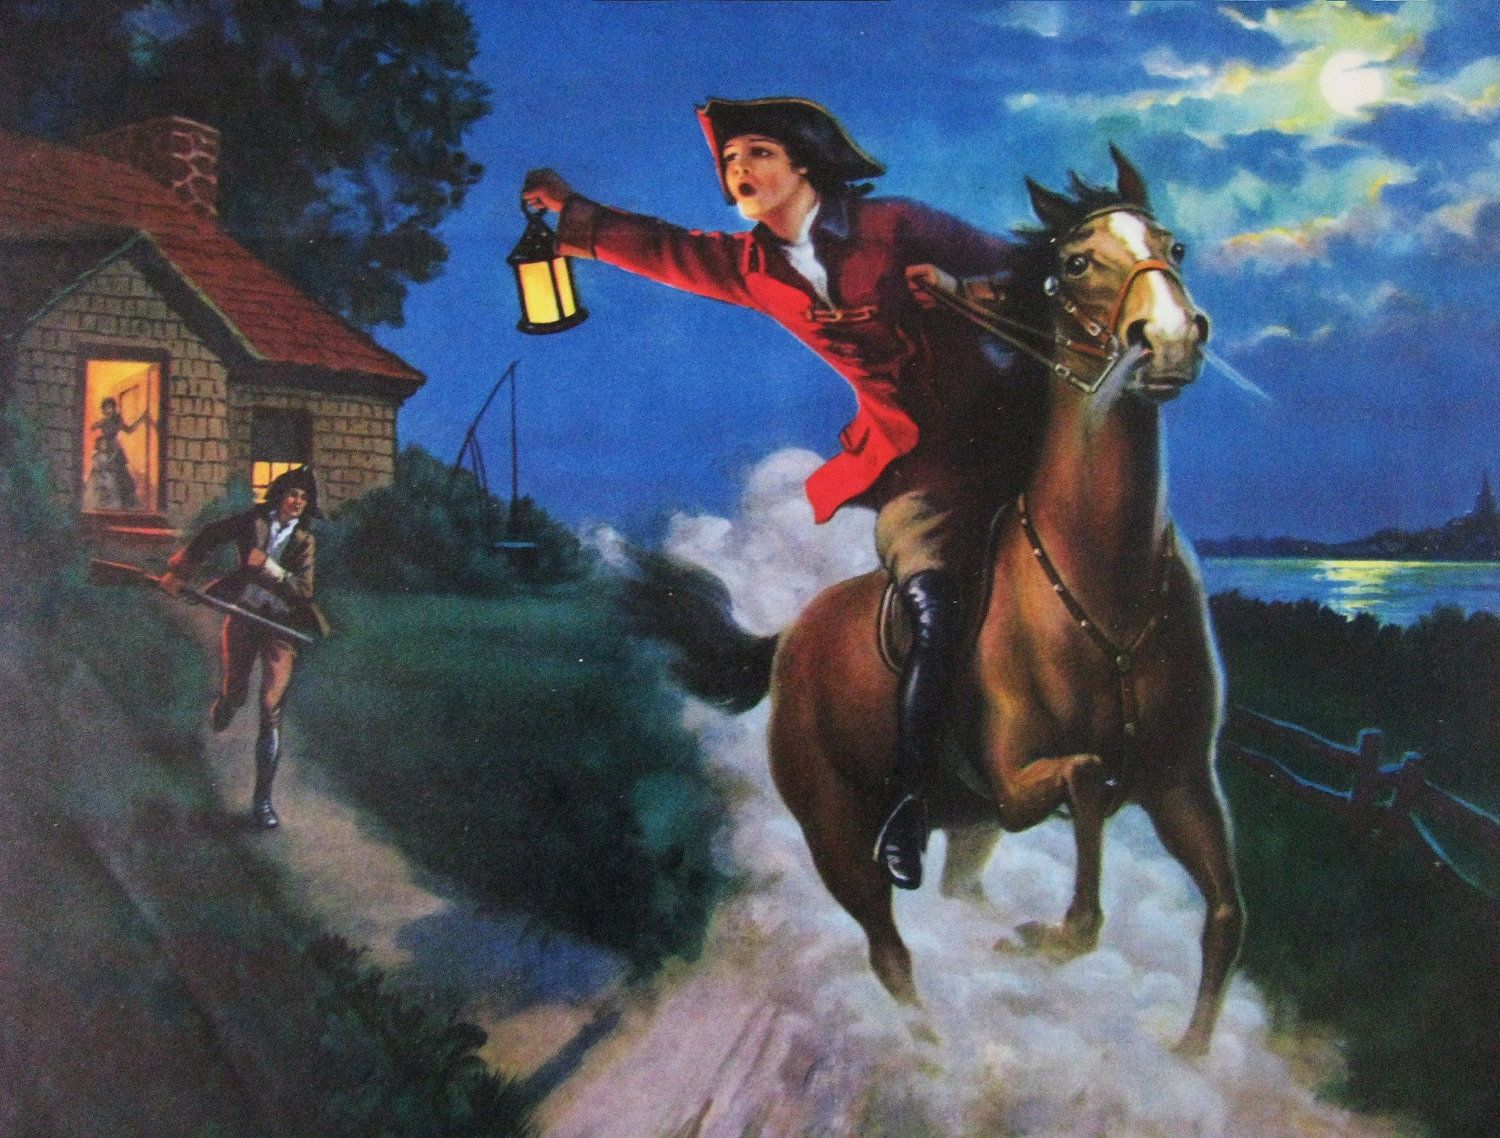 paul revere s true ride Revere is most known for his famous midnight ride of paul revere during which  he warned minutemen in  paul revere is born in late december in the north  end of boston  a true republican: the life of paul revere.